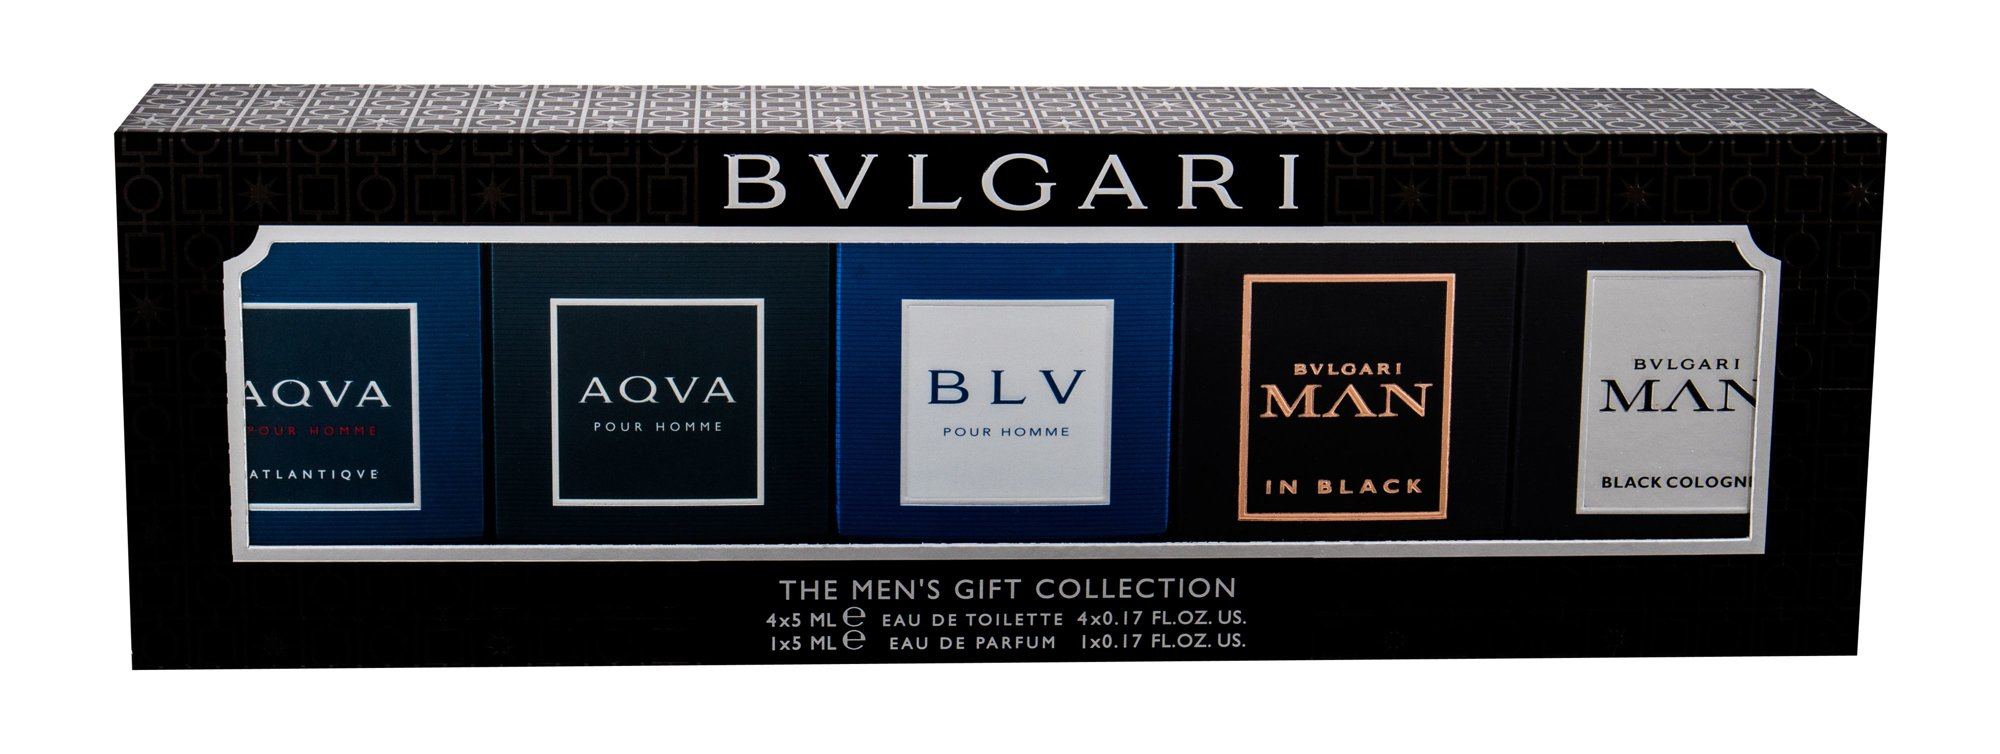 Bvlgari Mini Set Eau de Toilette 5x5ml